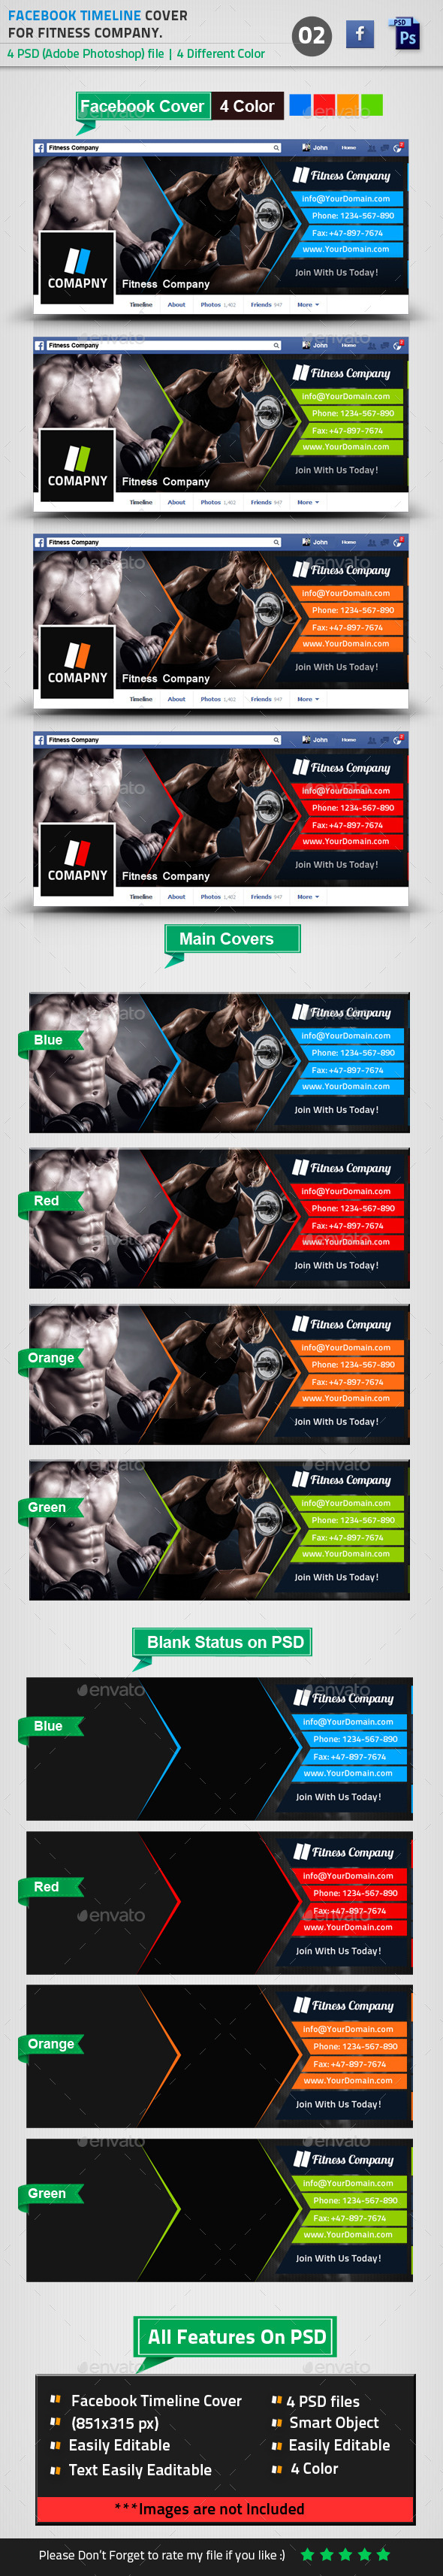 Fitness Facebook Timeline Cover 02